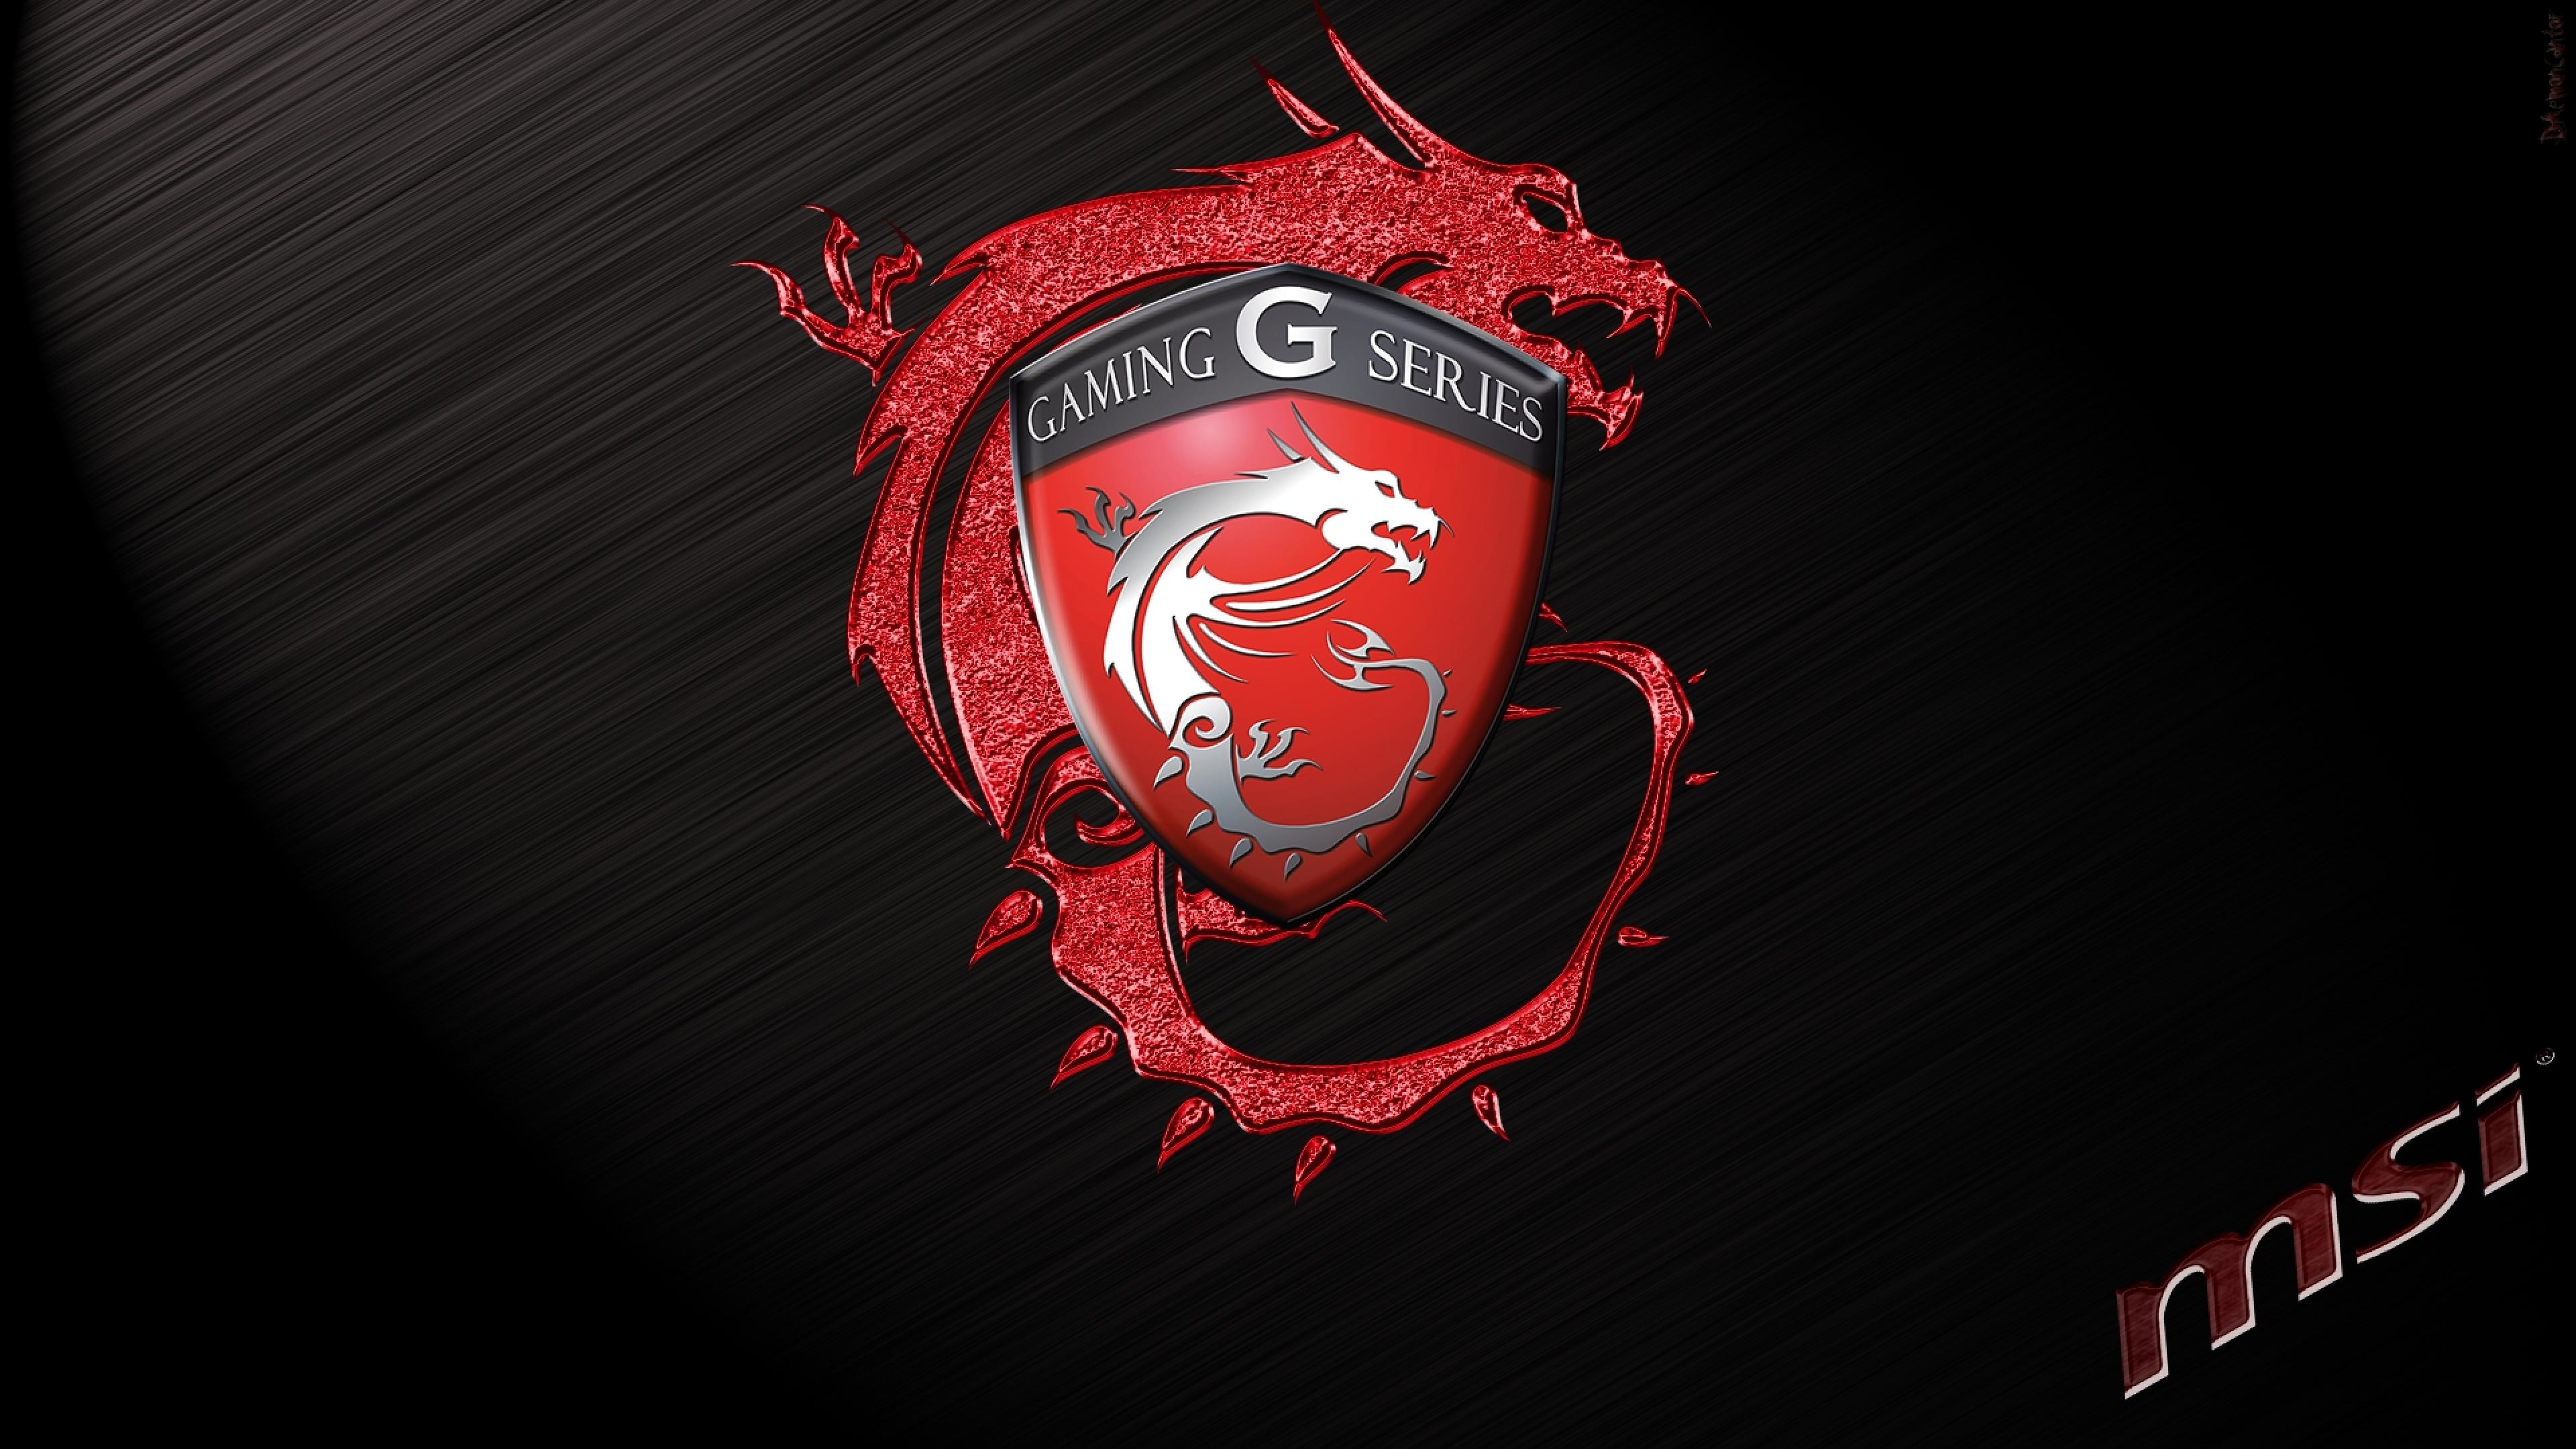 10 New Msi Gaming Series Wallpaper Full Hd 1920 1080 For: MSI Wallpaper 4K (69+ Images